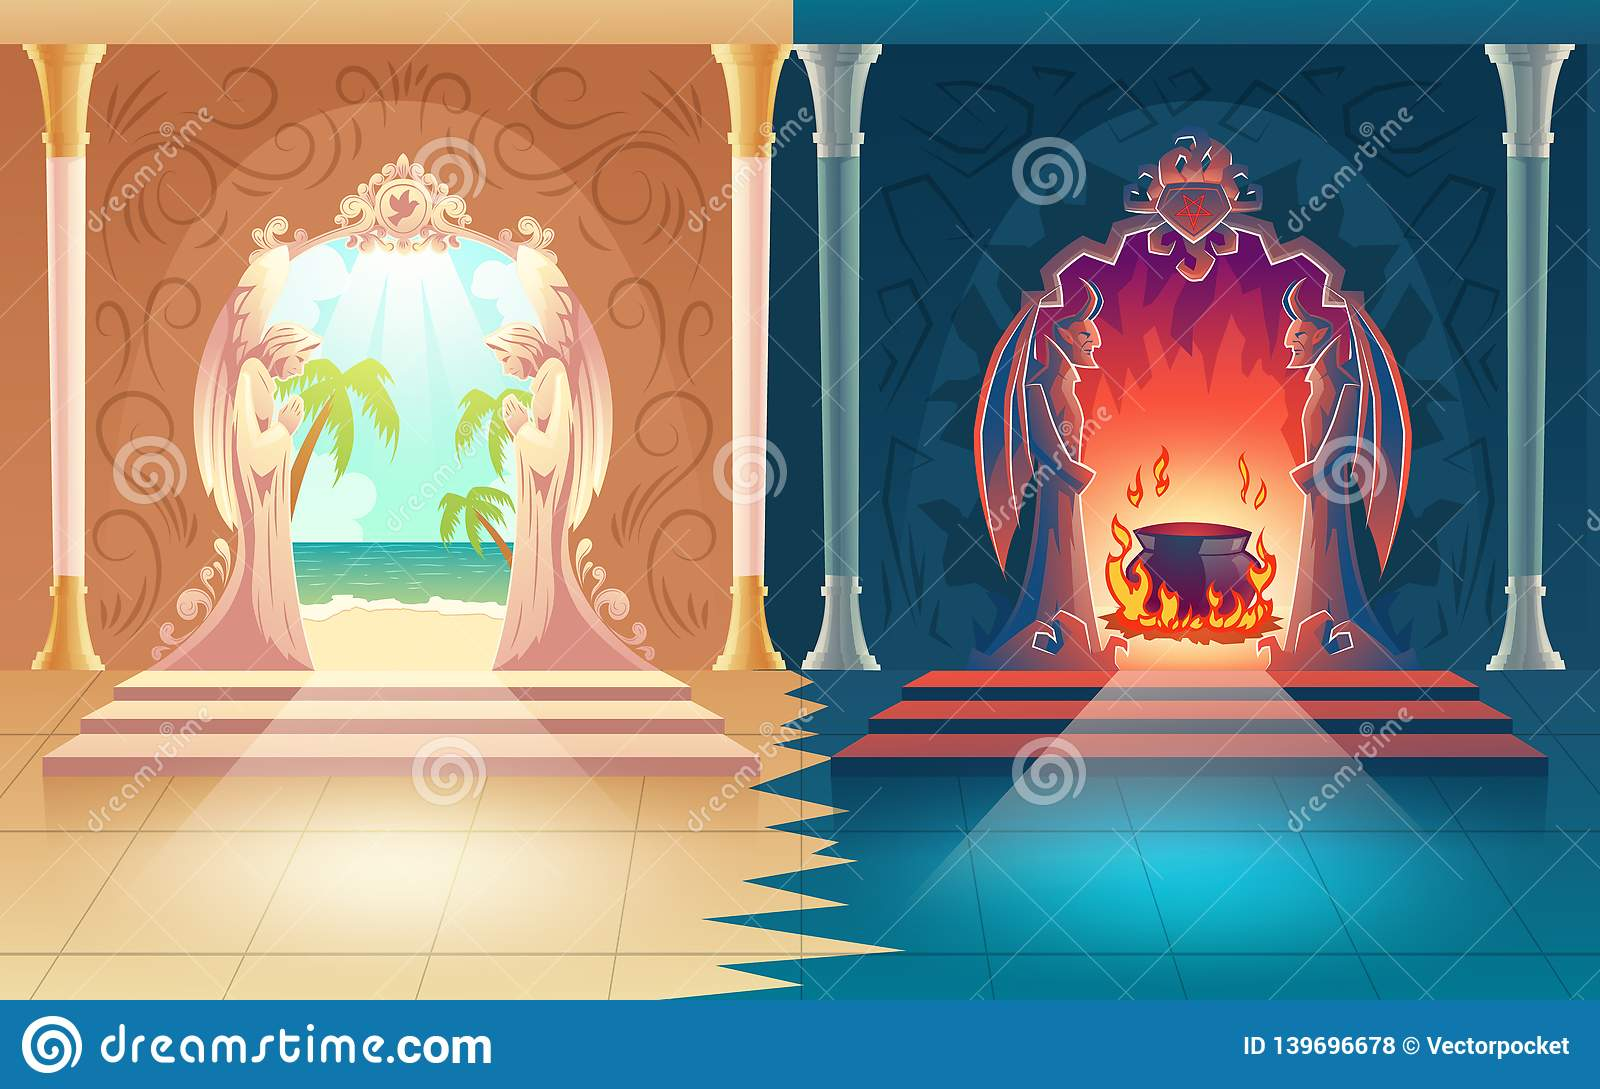 Heaven and hell gates cartoon vector concept